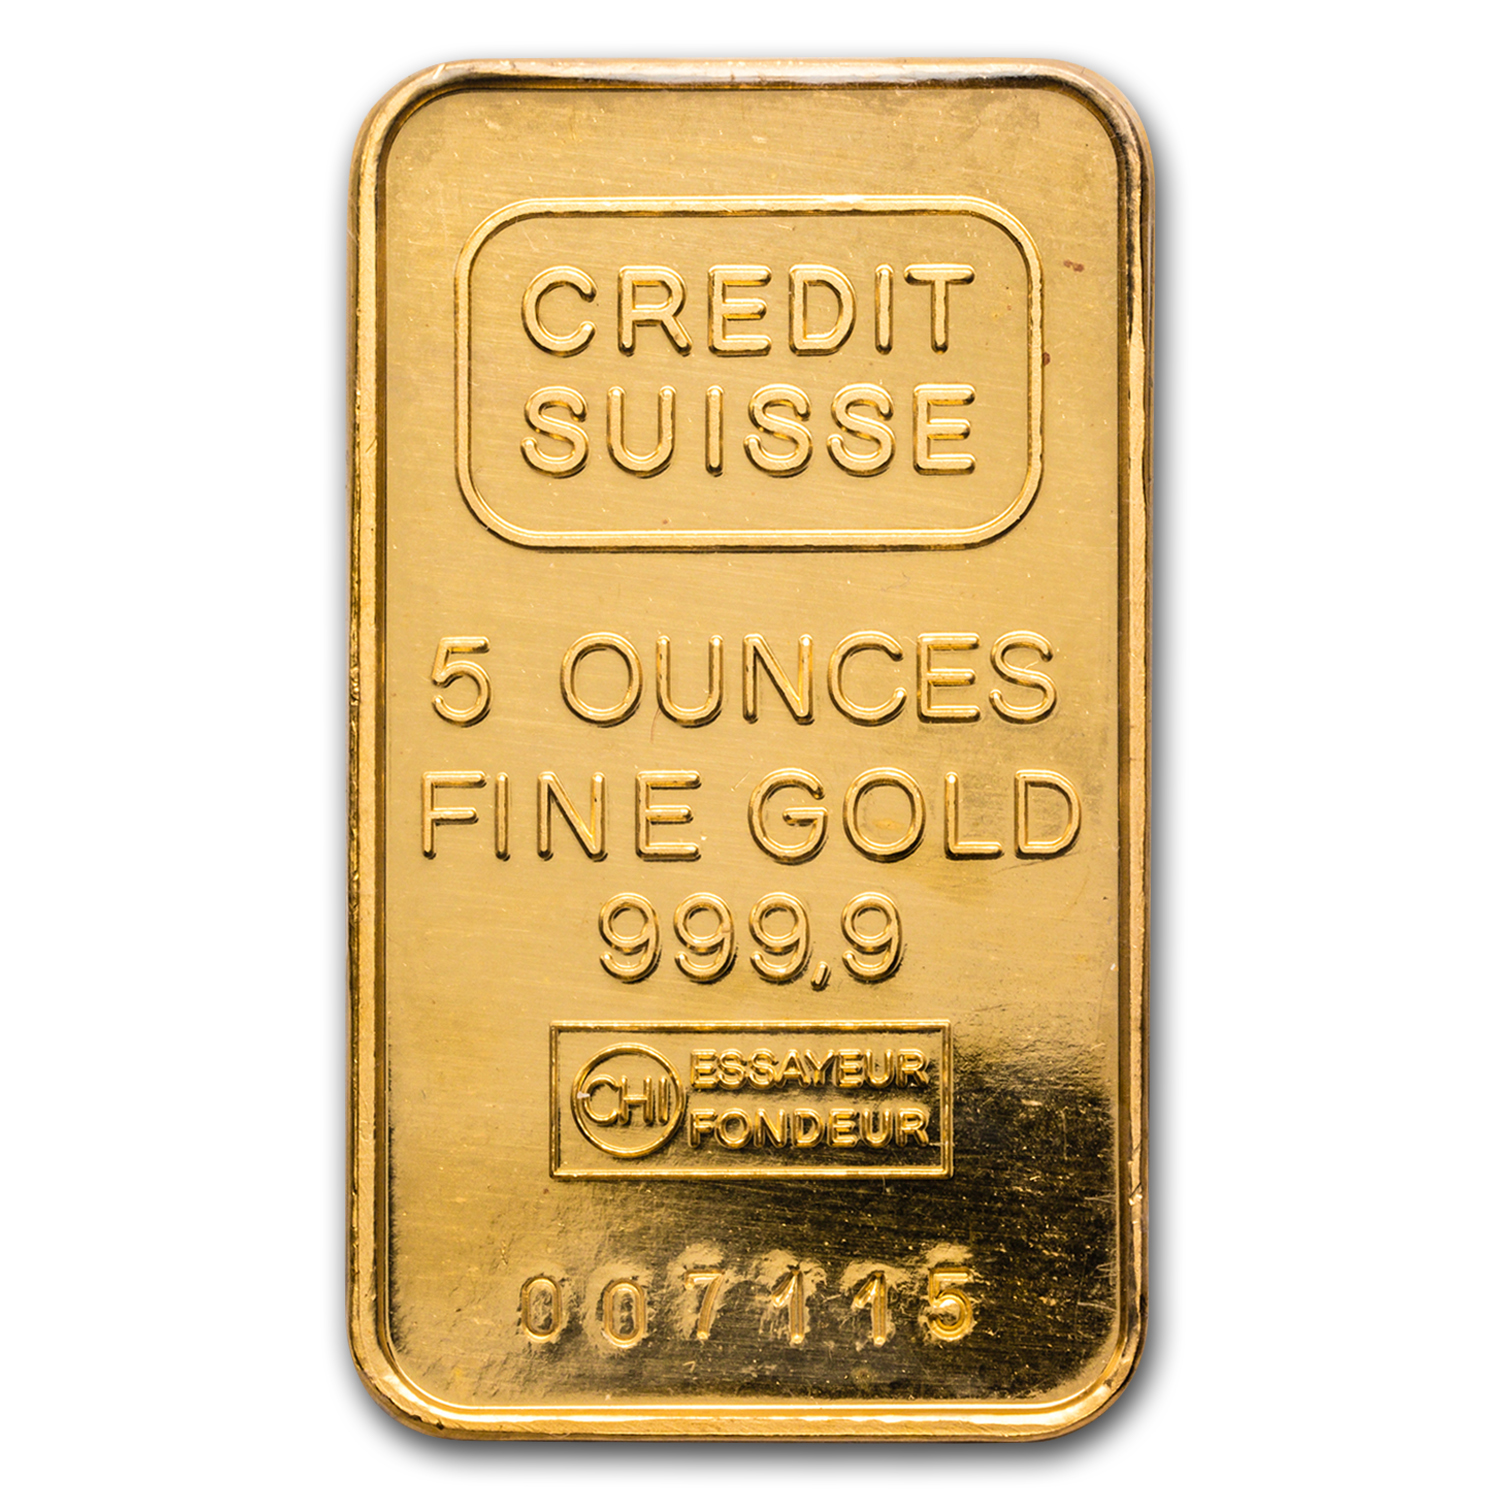 5 oz Gold Bars - Credit Suisse